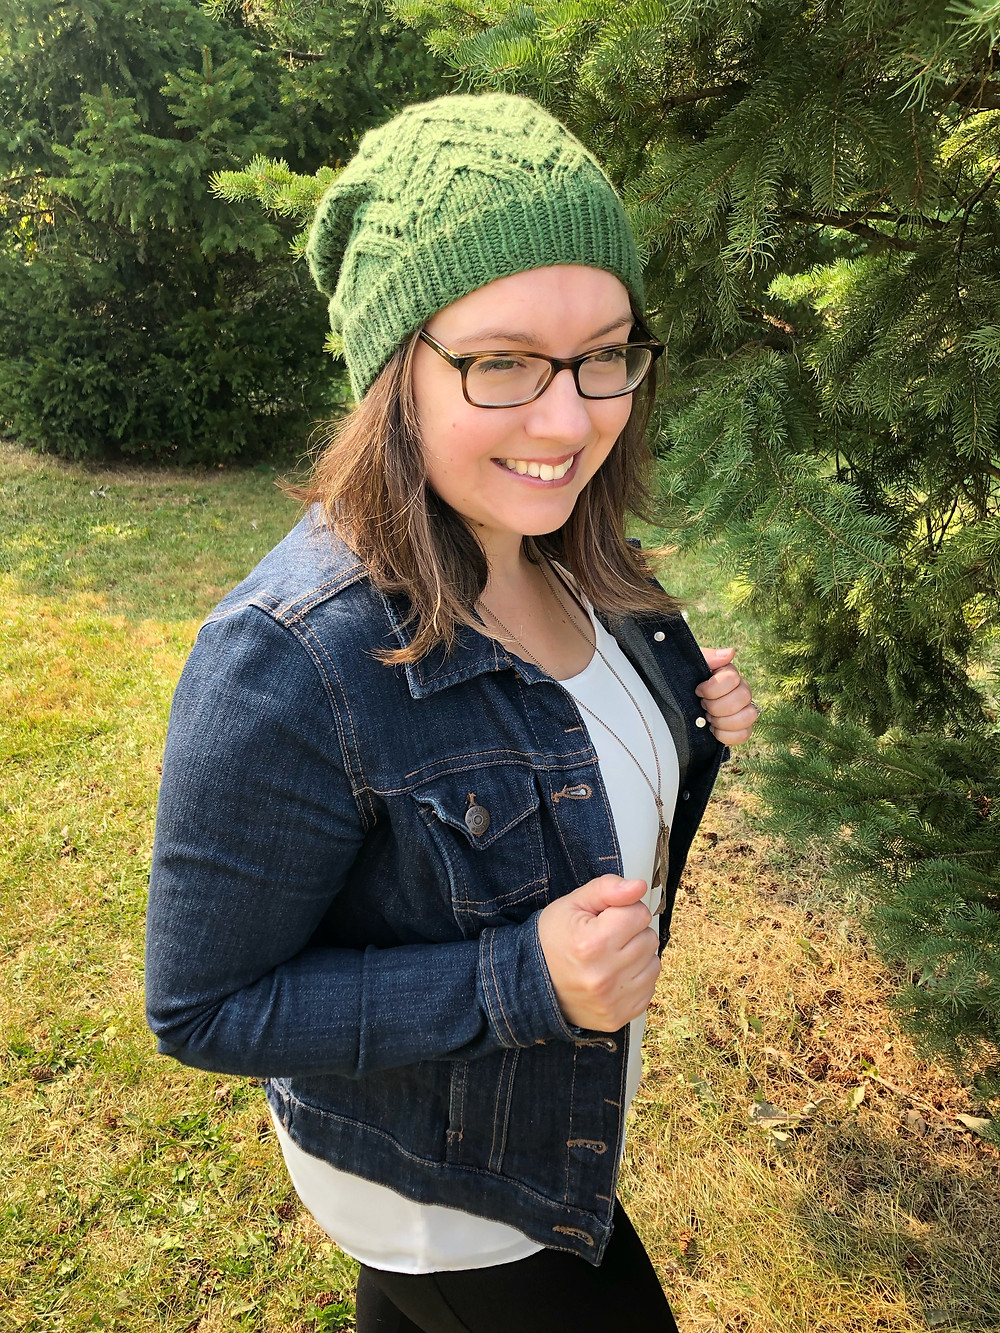 A woman with brown hair and glasses, standing outdoors wearing a green knit hat with lace detail, a denim jacket and white blouse. She is holding open the jacket with her hands and her gaze is down toward her right side.